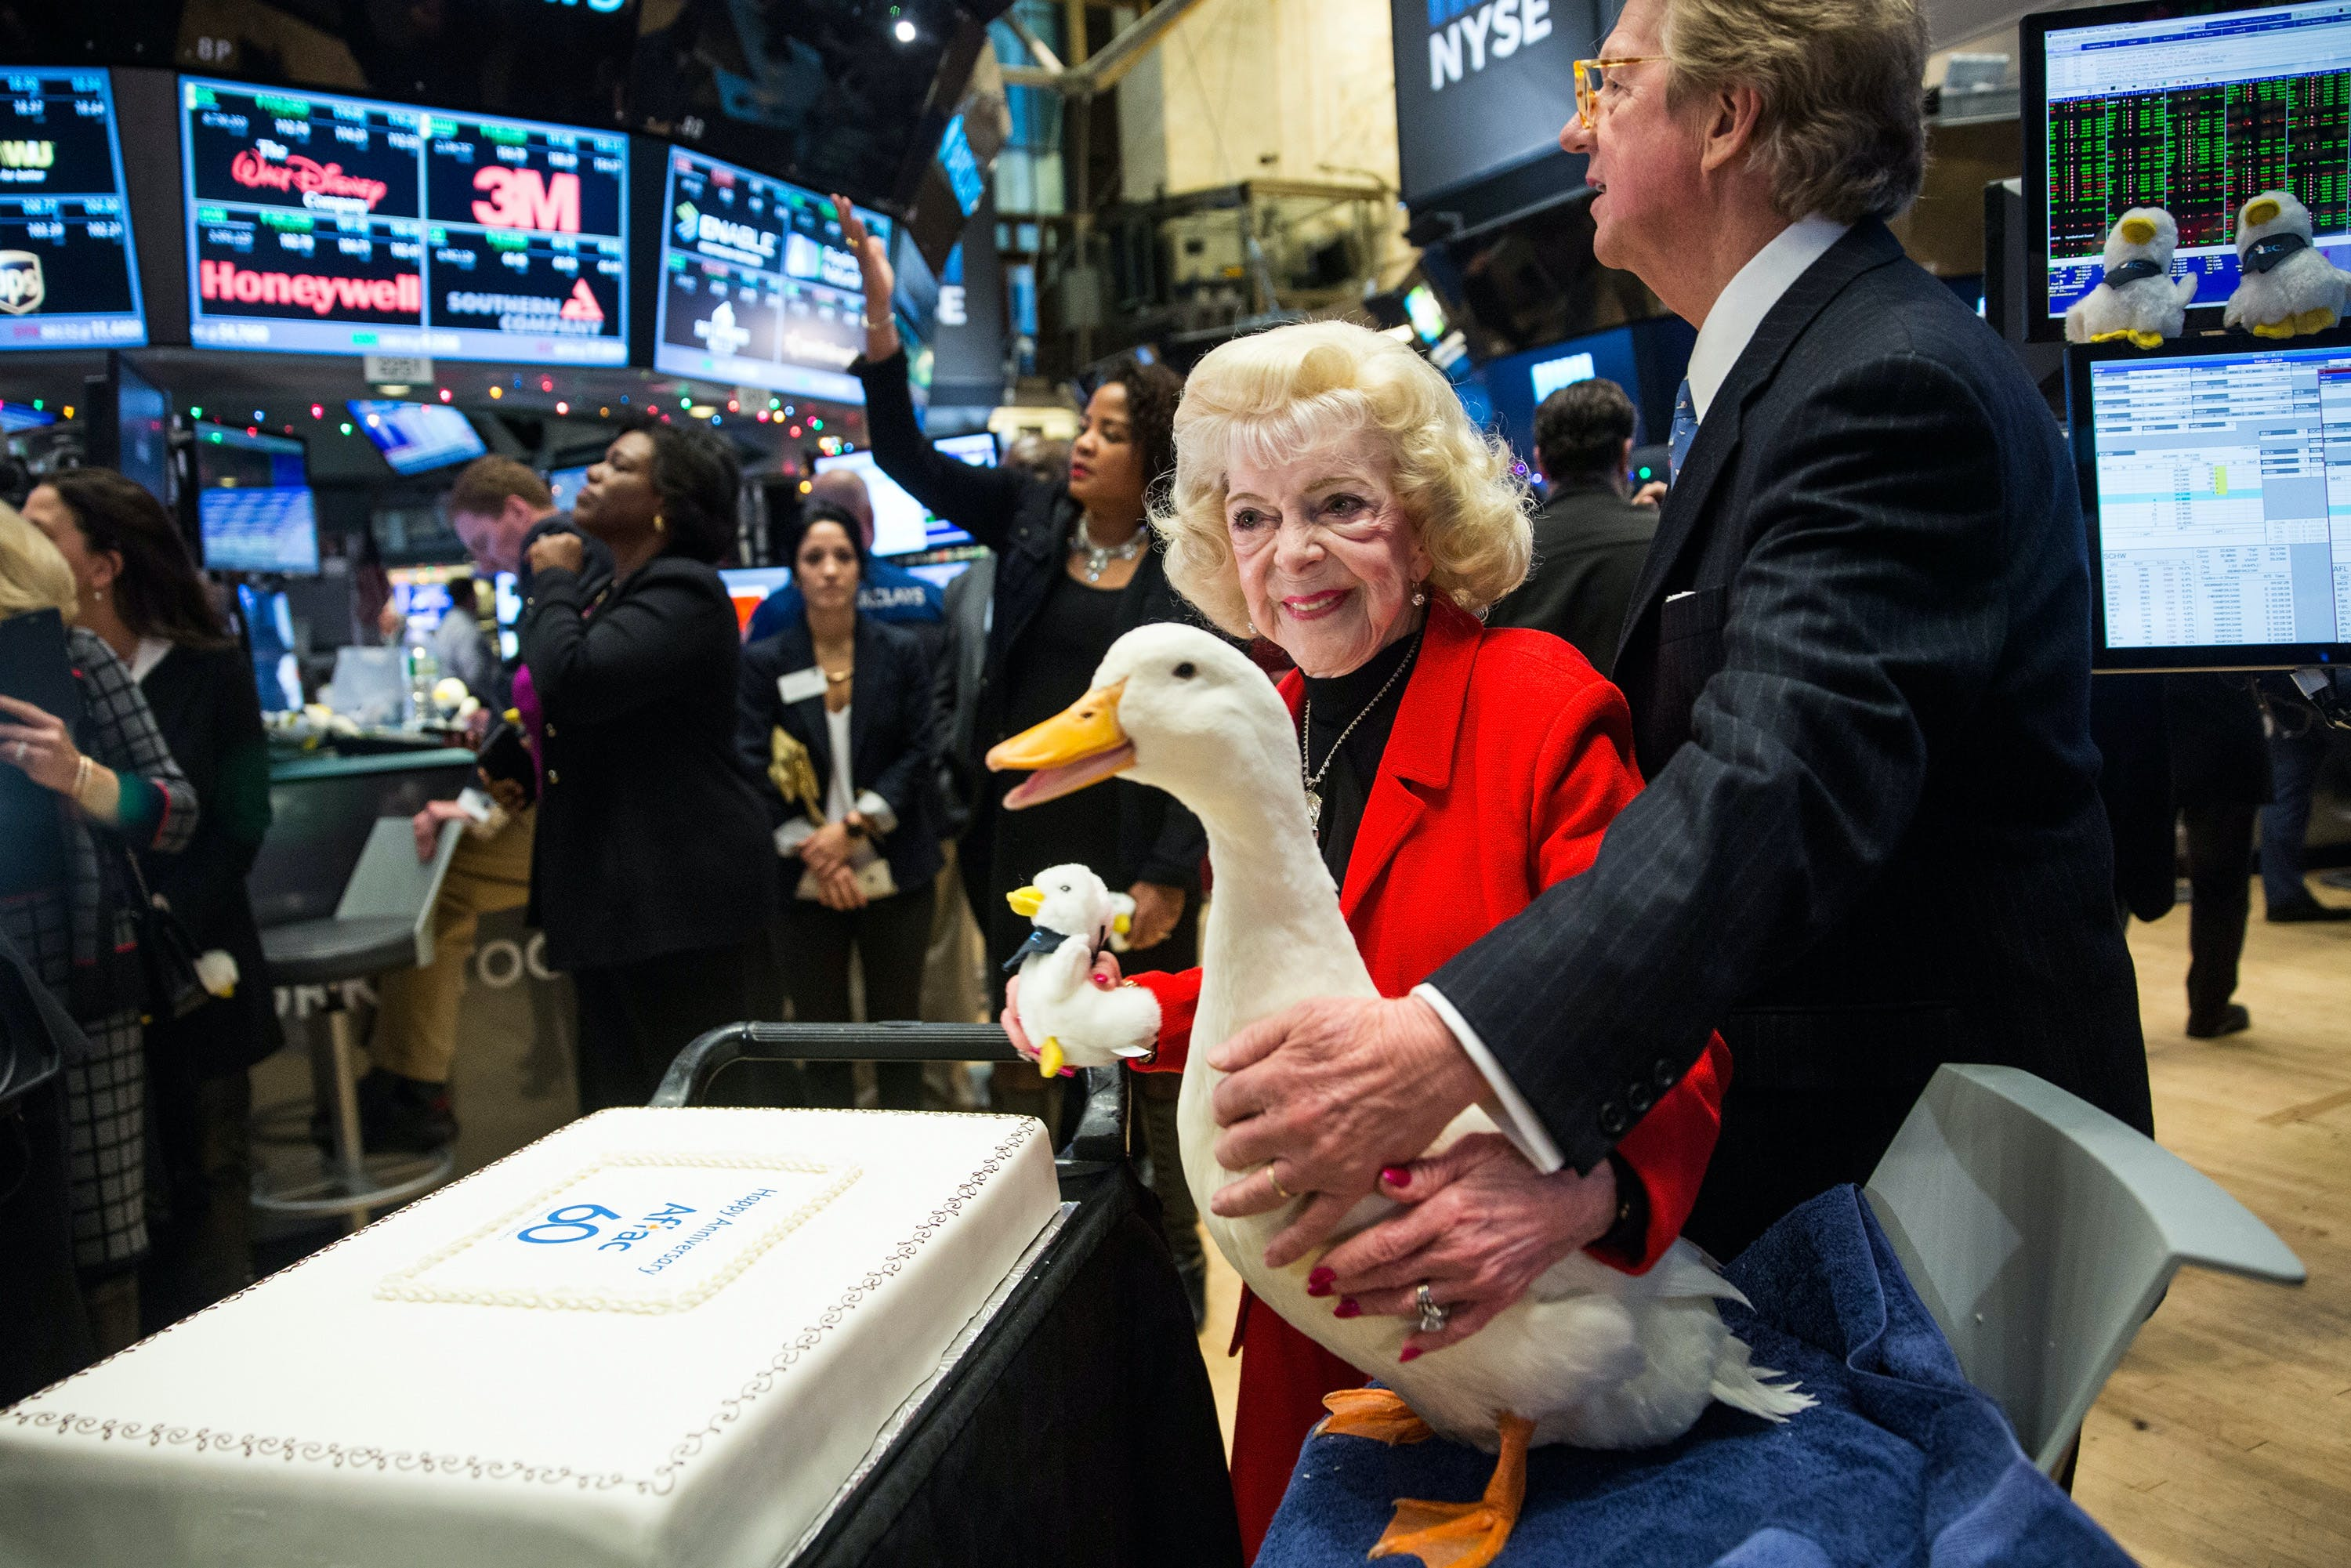 david-dayen BEHIND THE DUCK: FORMER AFLAC EMPLOYEES ALLEGE FRAUD AND ABUSE IN NEARLY EVERY ASPECT OF COMPANY Business Featured [your]NEWS